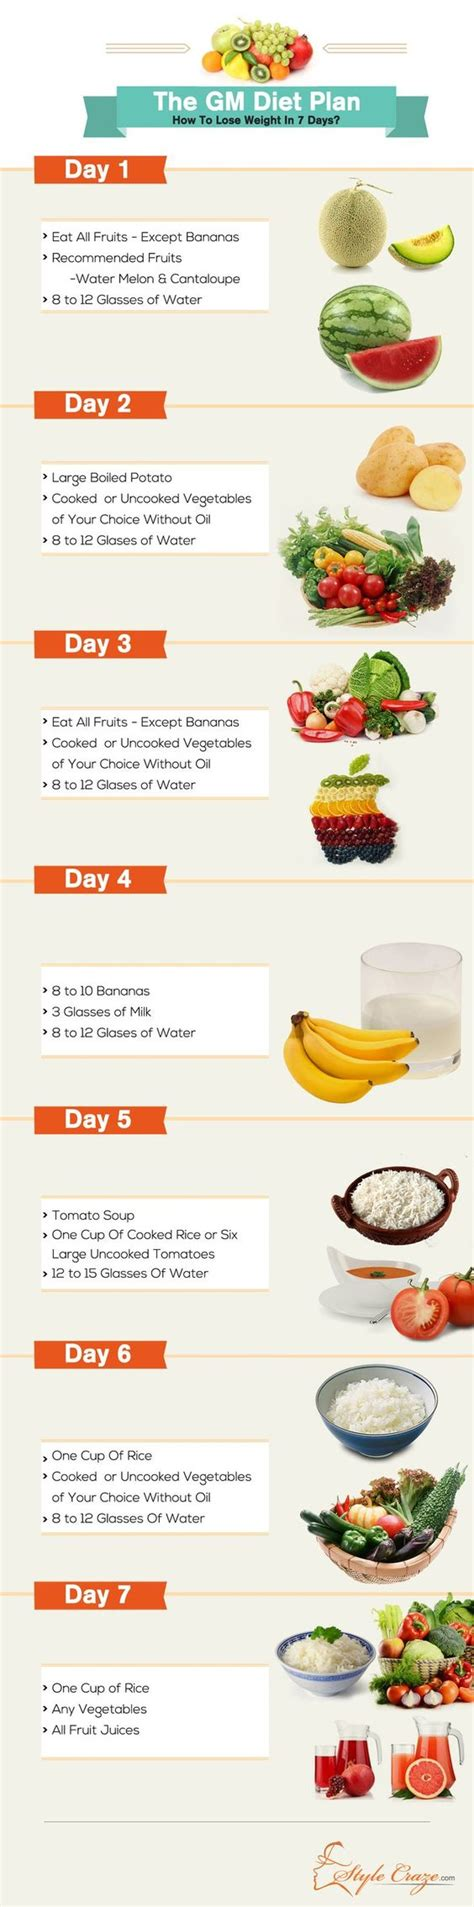 Detox Week Plan by The Gm Diet Plan How To Lose Weight In Just 7 Days To